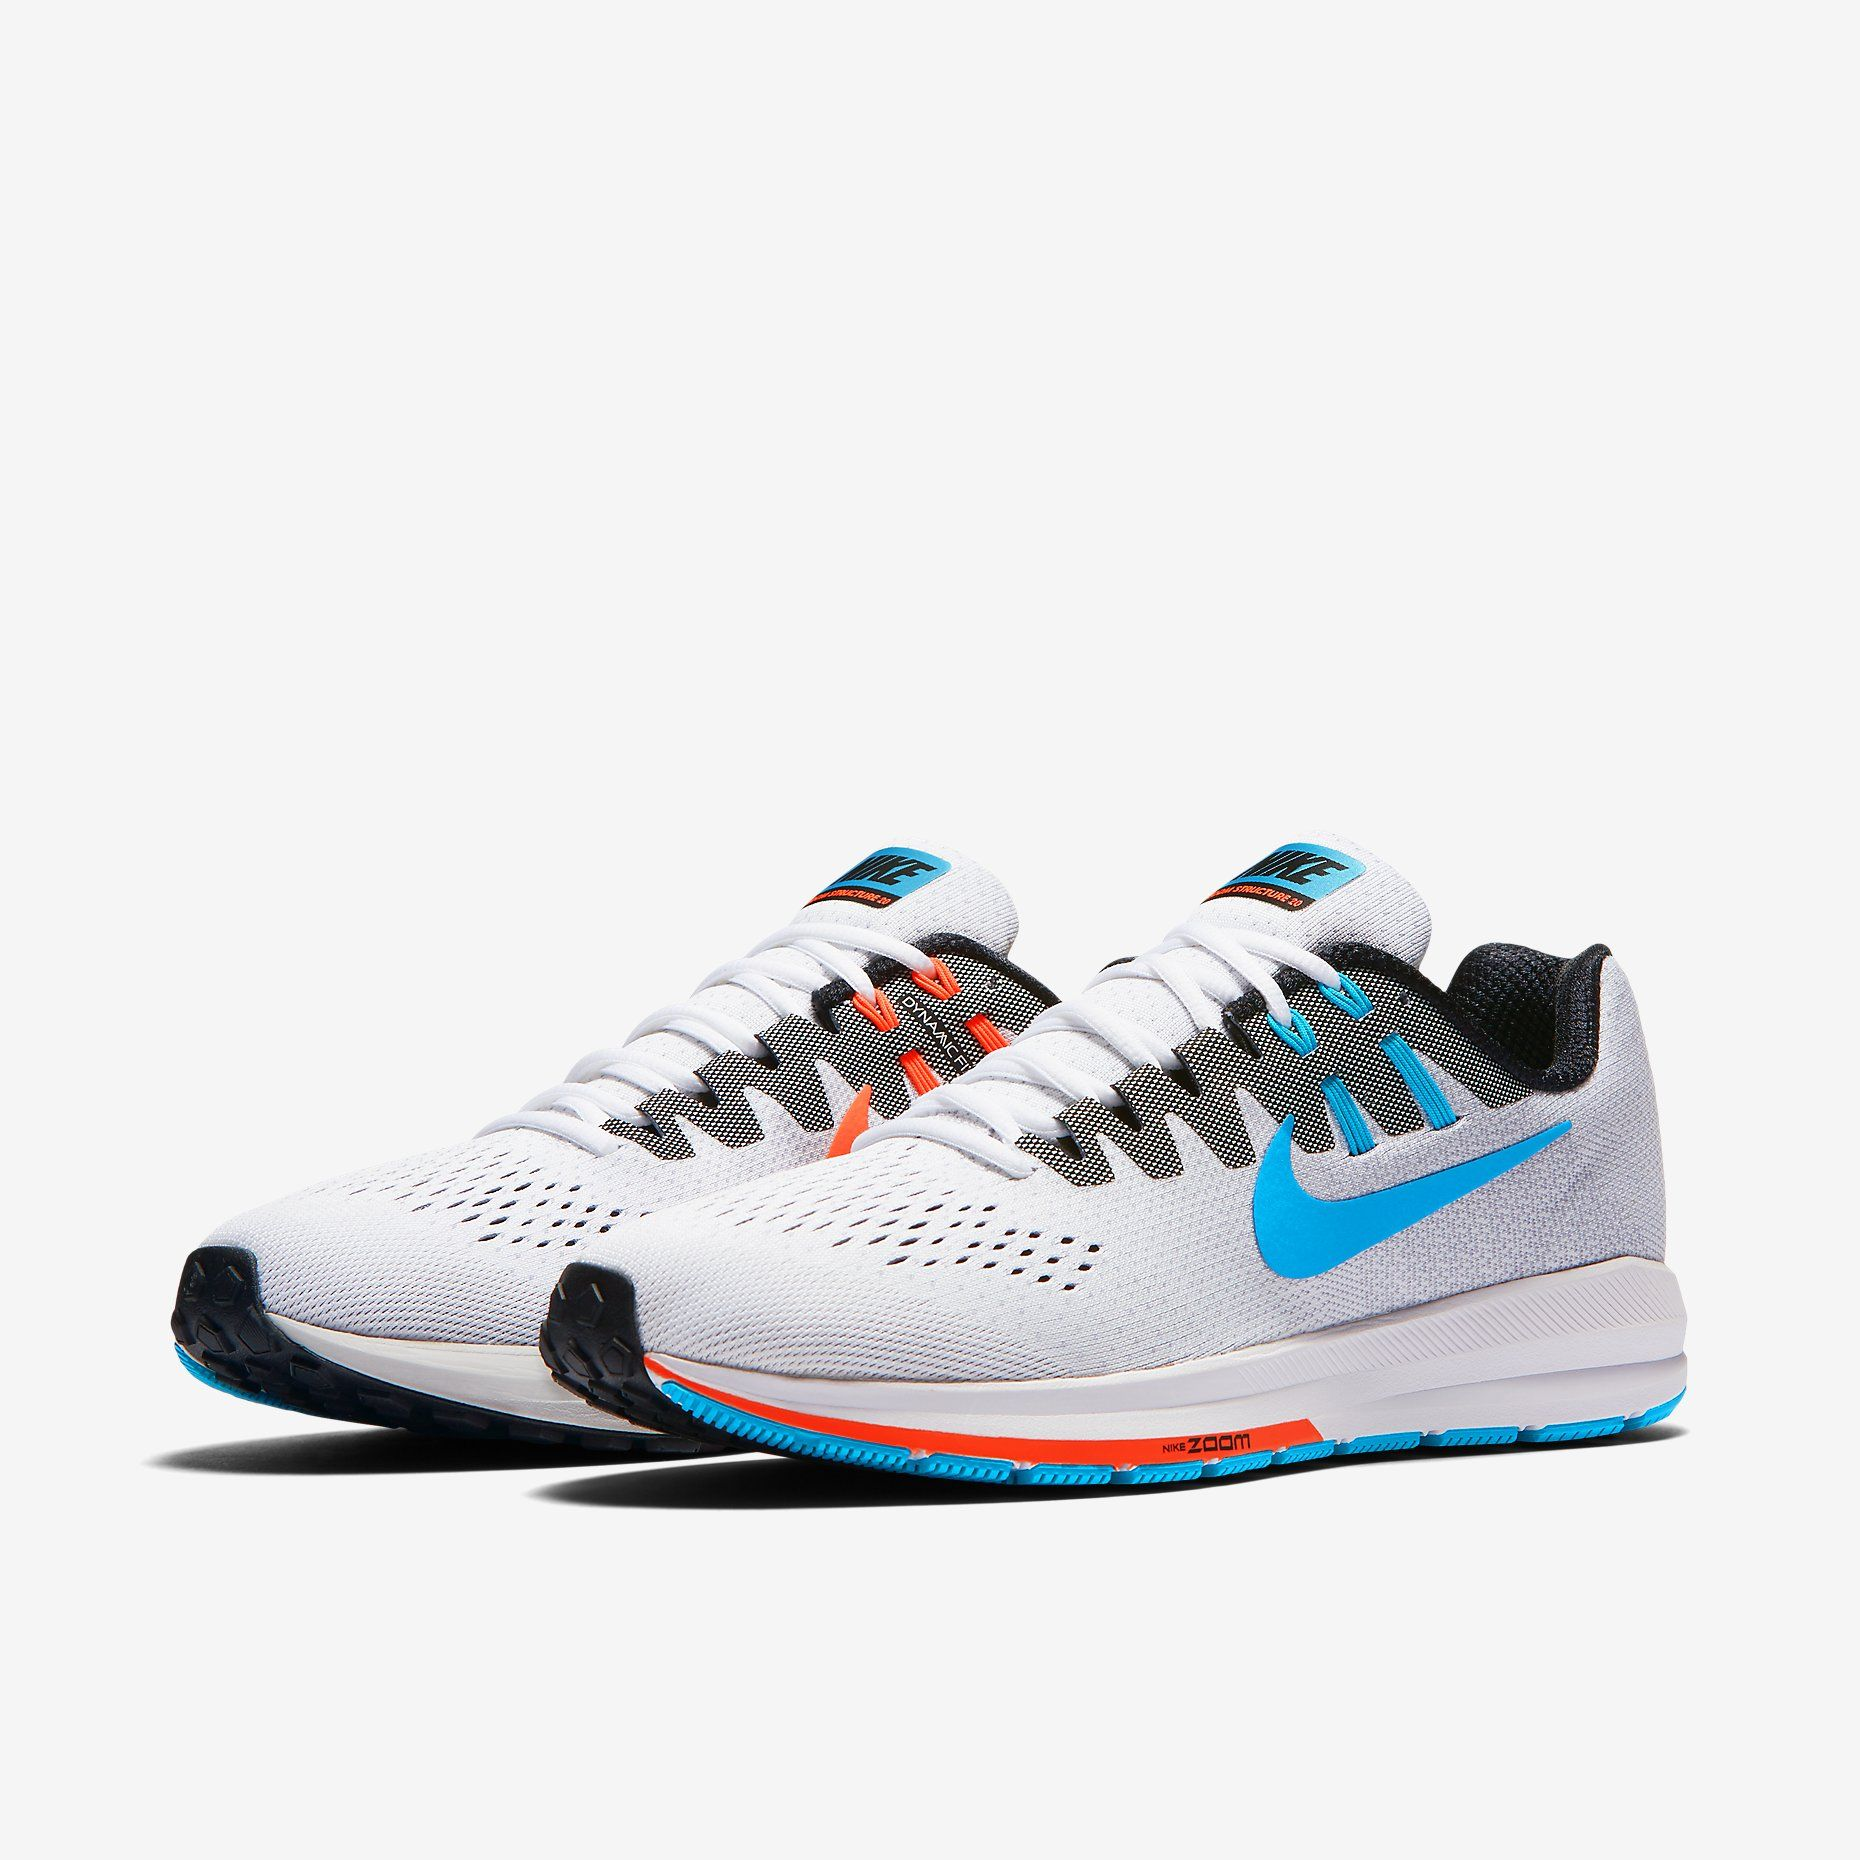 NIKE AIR ZOOM STRUCTURE 20 (ANNIVERSARY) · Running ShoesMens ...